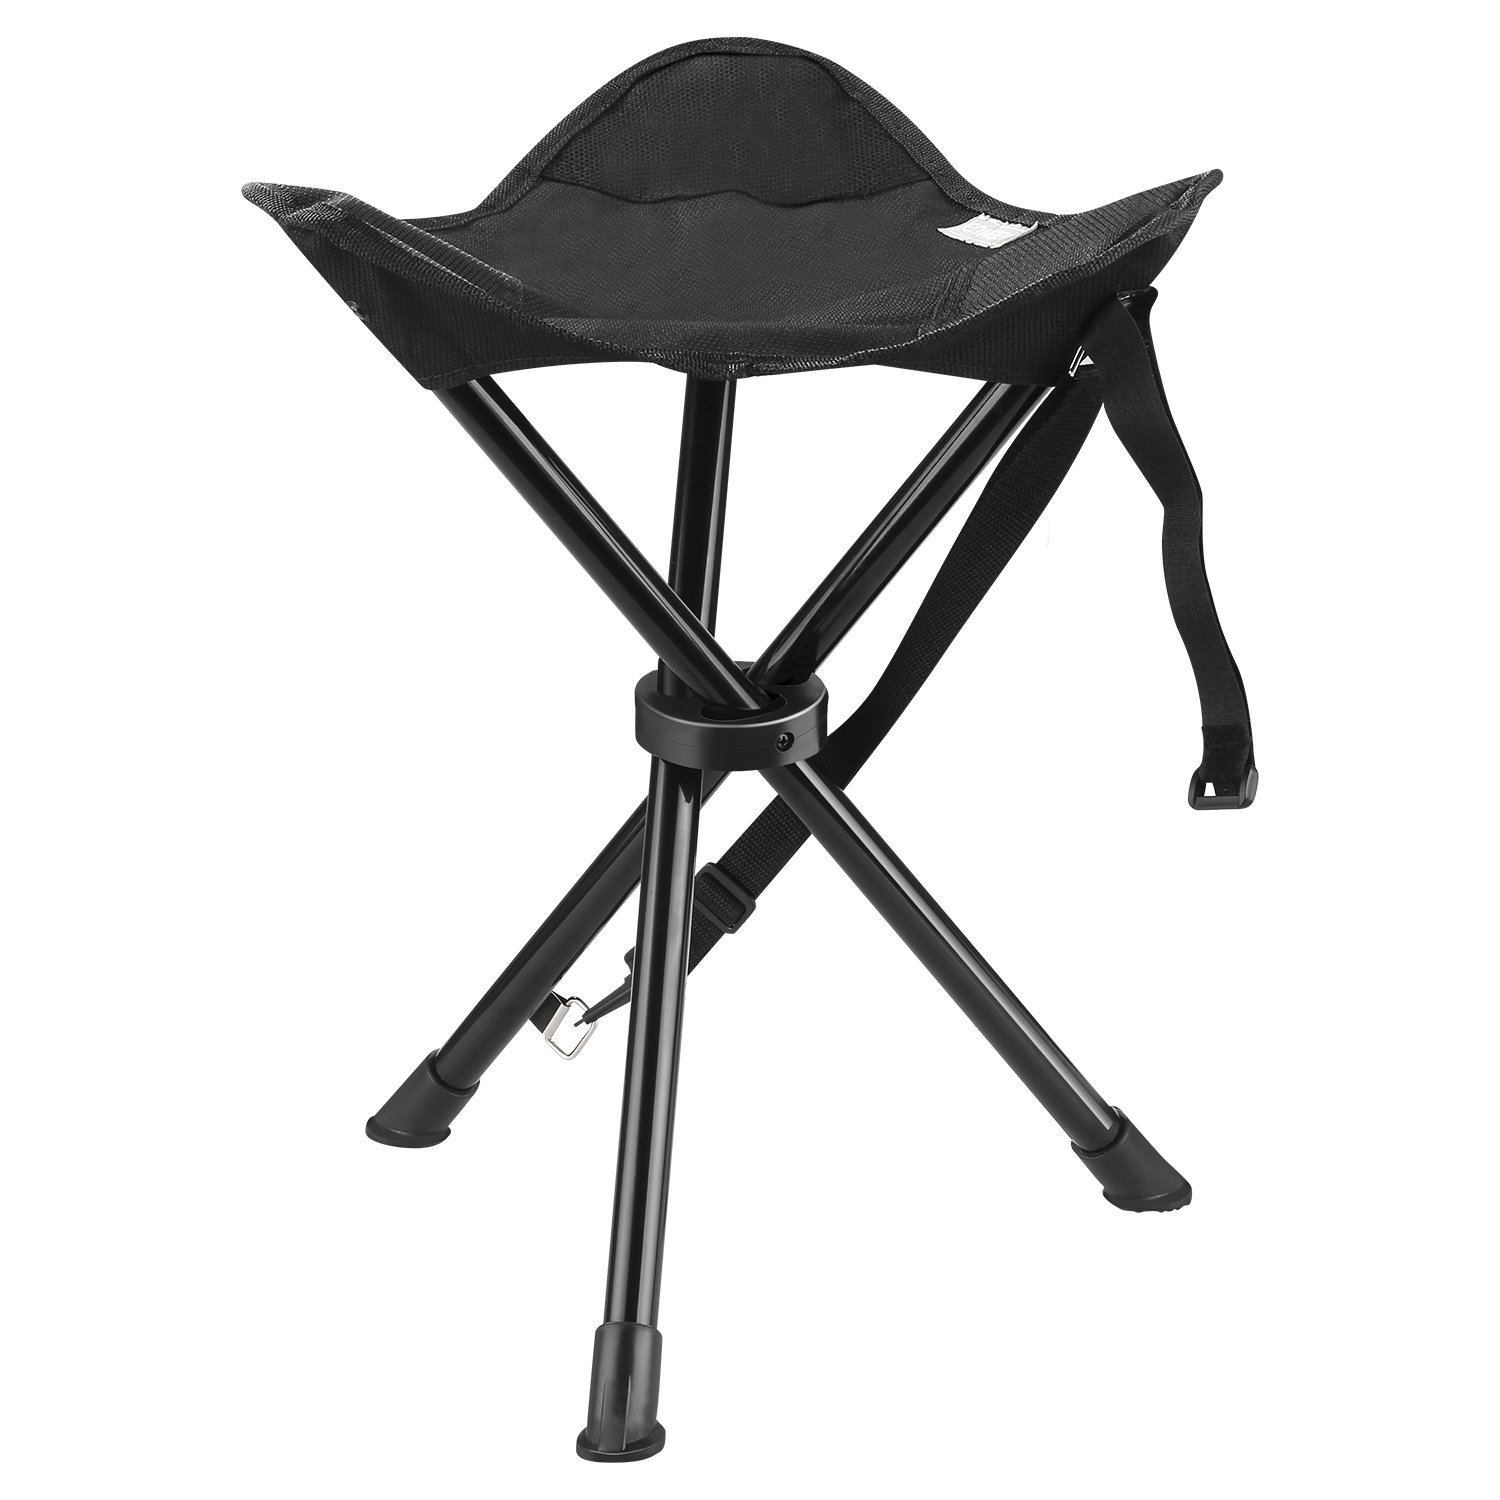 Amazon ENKEEO Portable Tripod Stool Folding Chair with